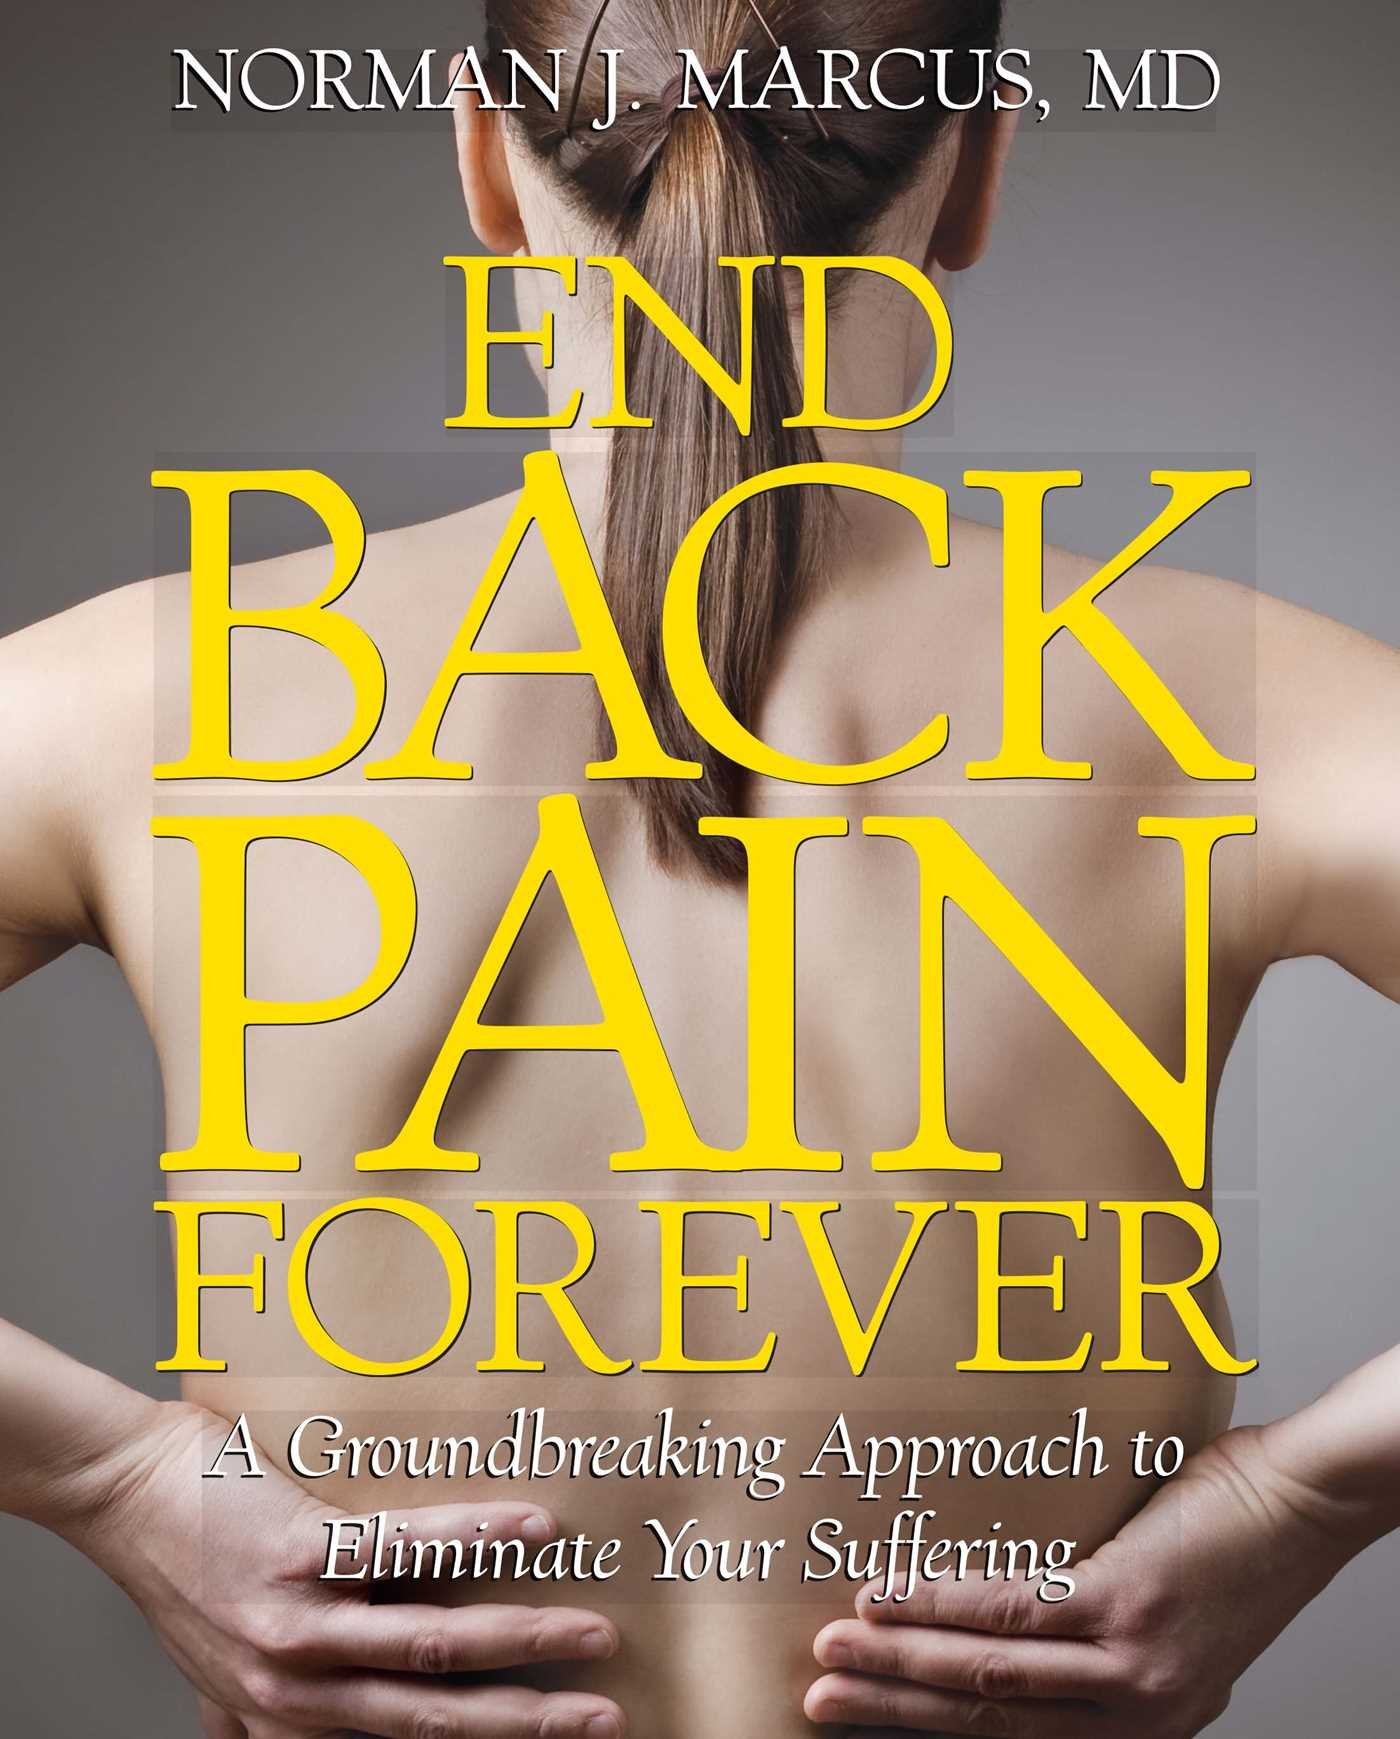 End Back Pain Forever: A Groundbreaking Approach to Eliminate Your Suffering PDF